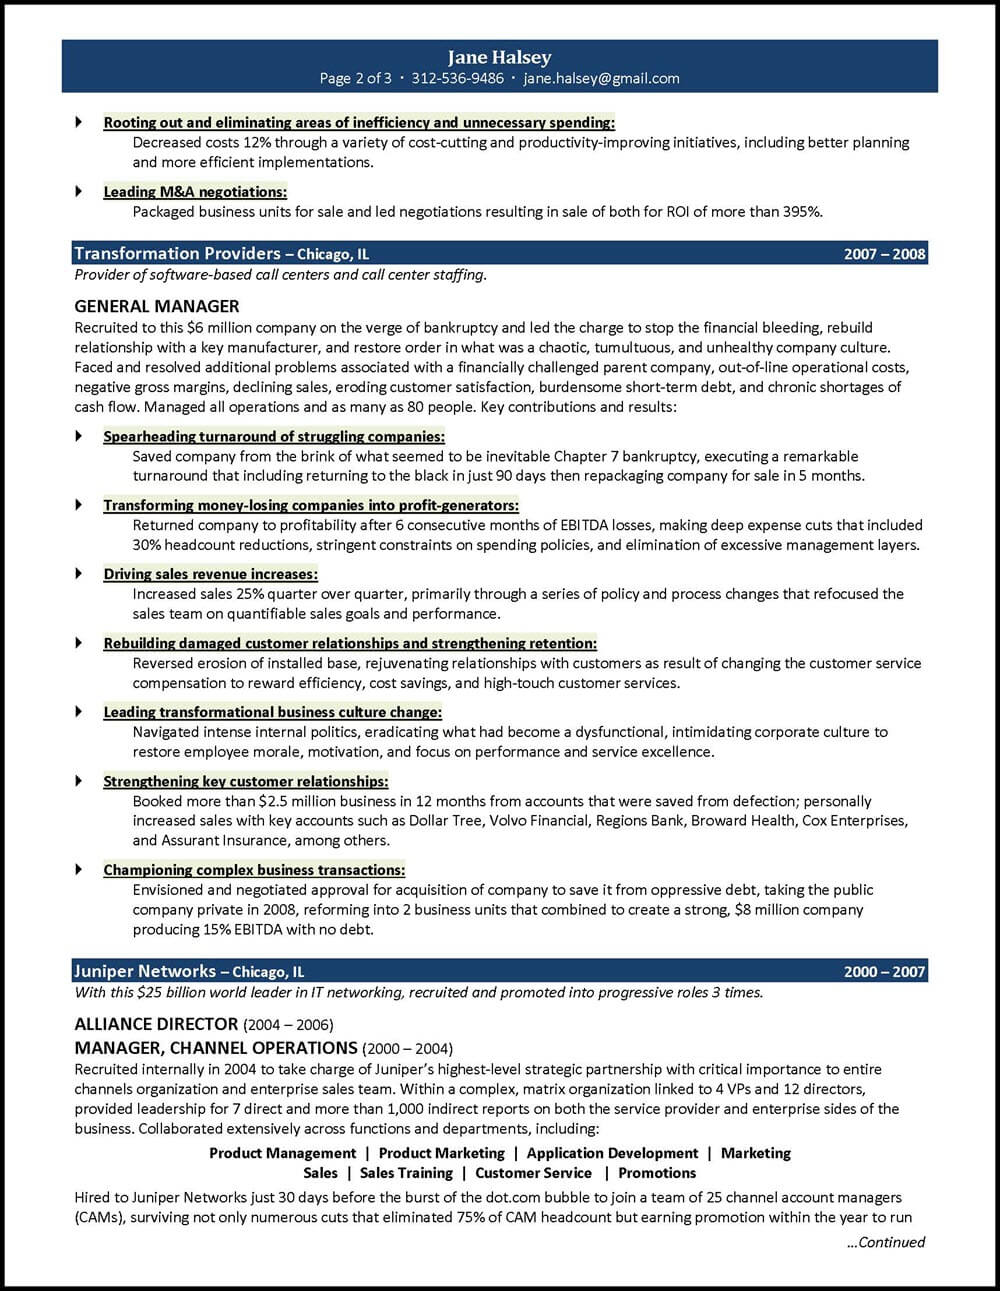 General Manager Resume Example For A Ceo Gm Candidate